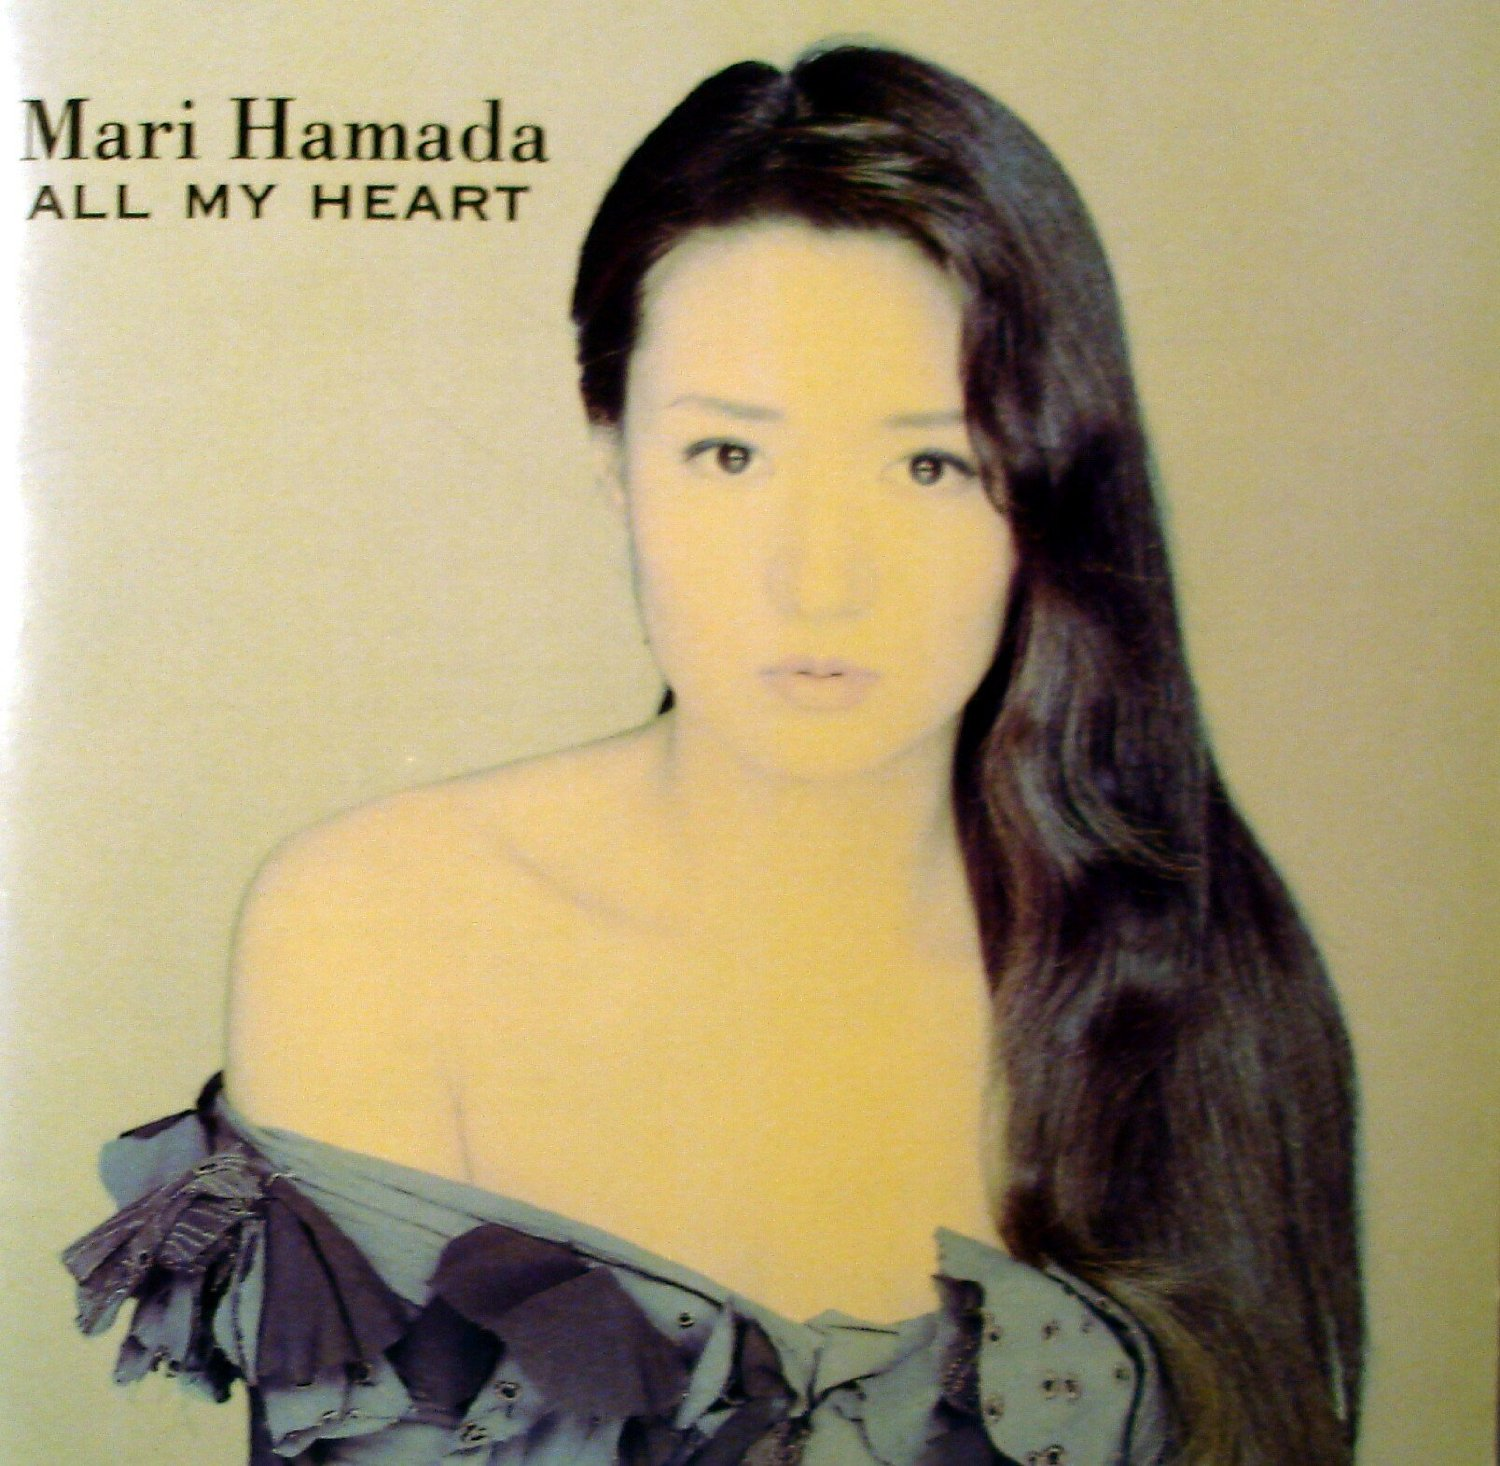 Original song: love can make you a fool of you(1982) this is mari hamadas version